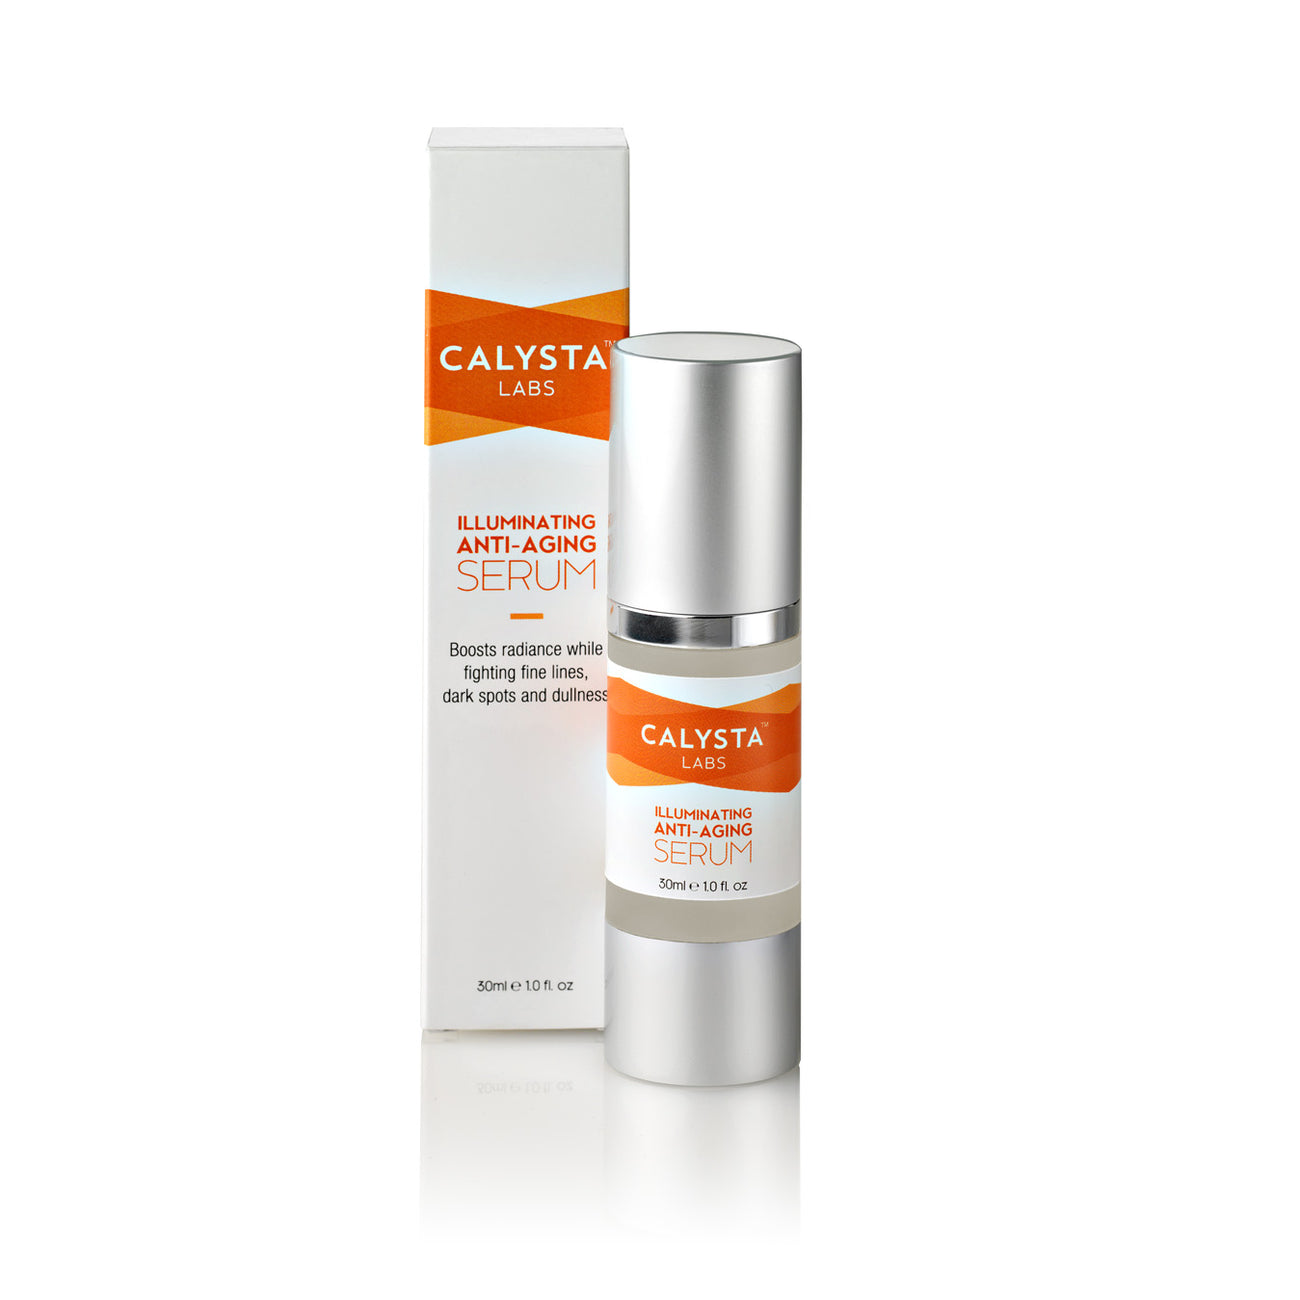 Illuminating Anti-Aging Serum